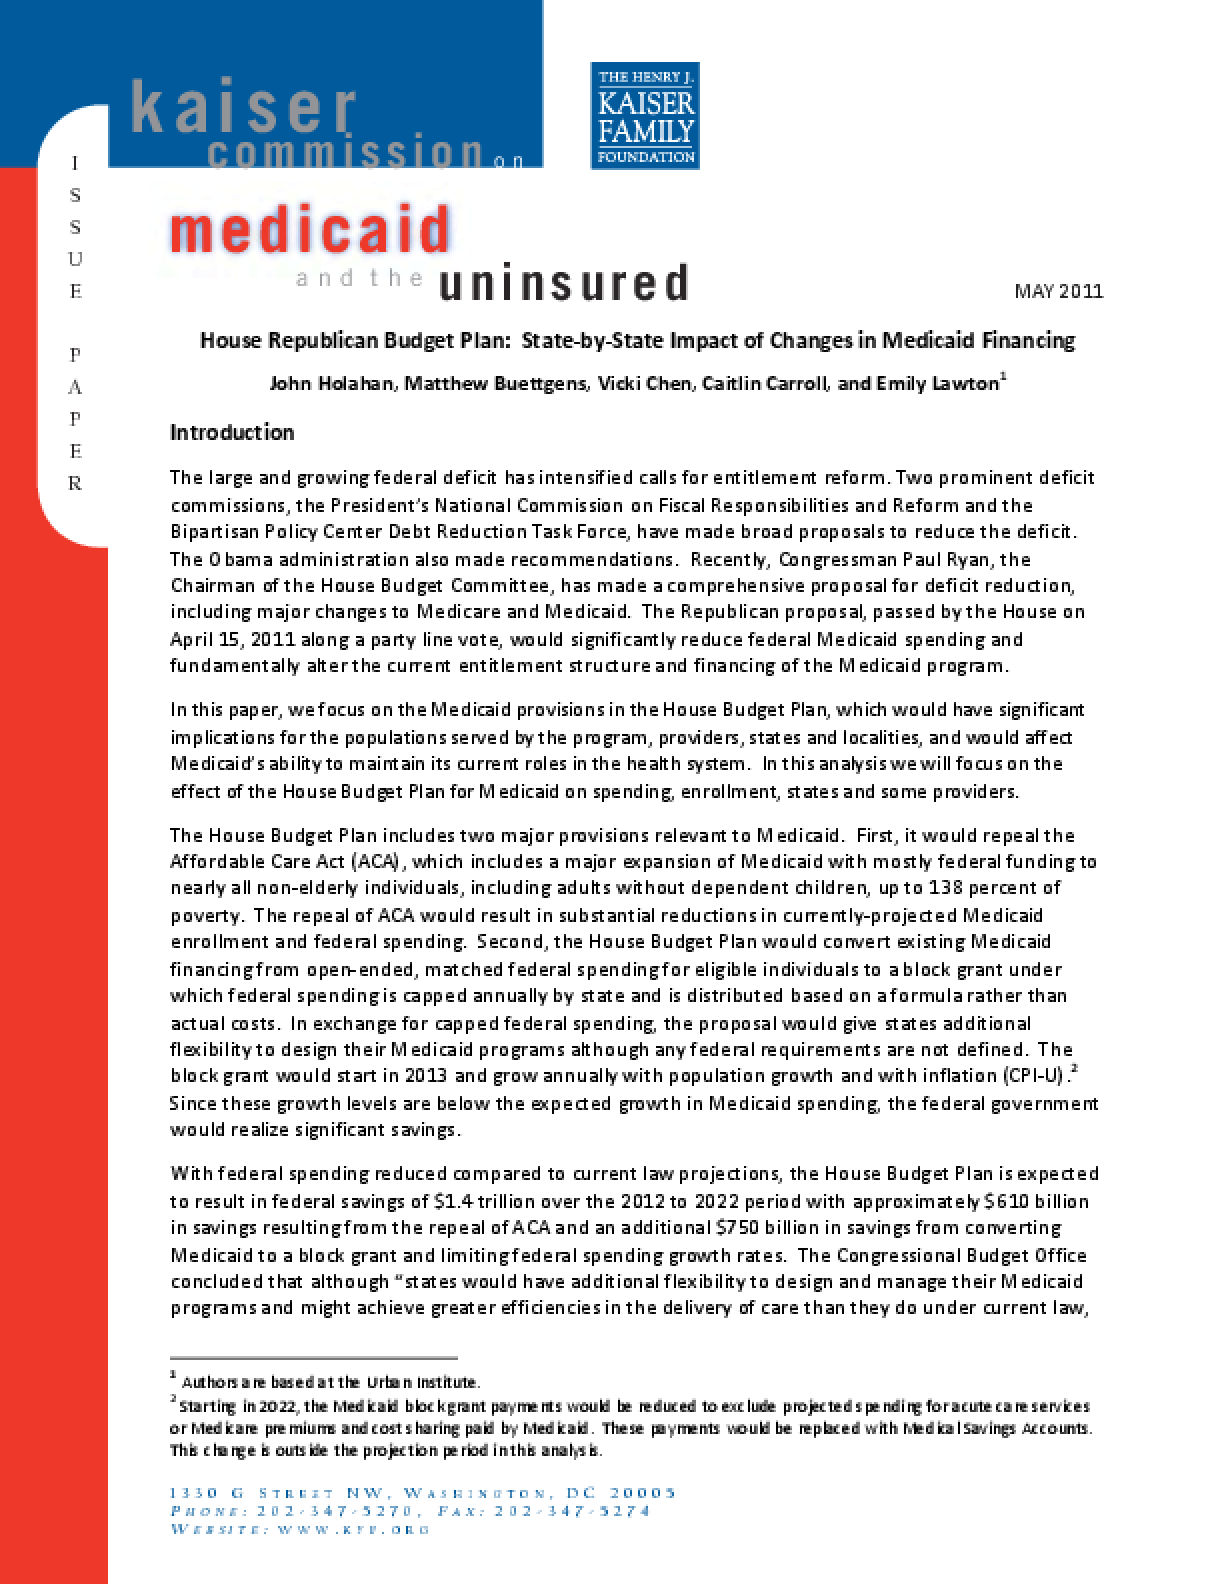 House Republican Budget Plan: State-by-State Impact of Changes in Medicaid Financing